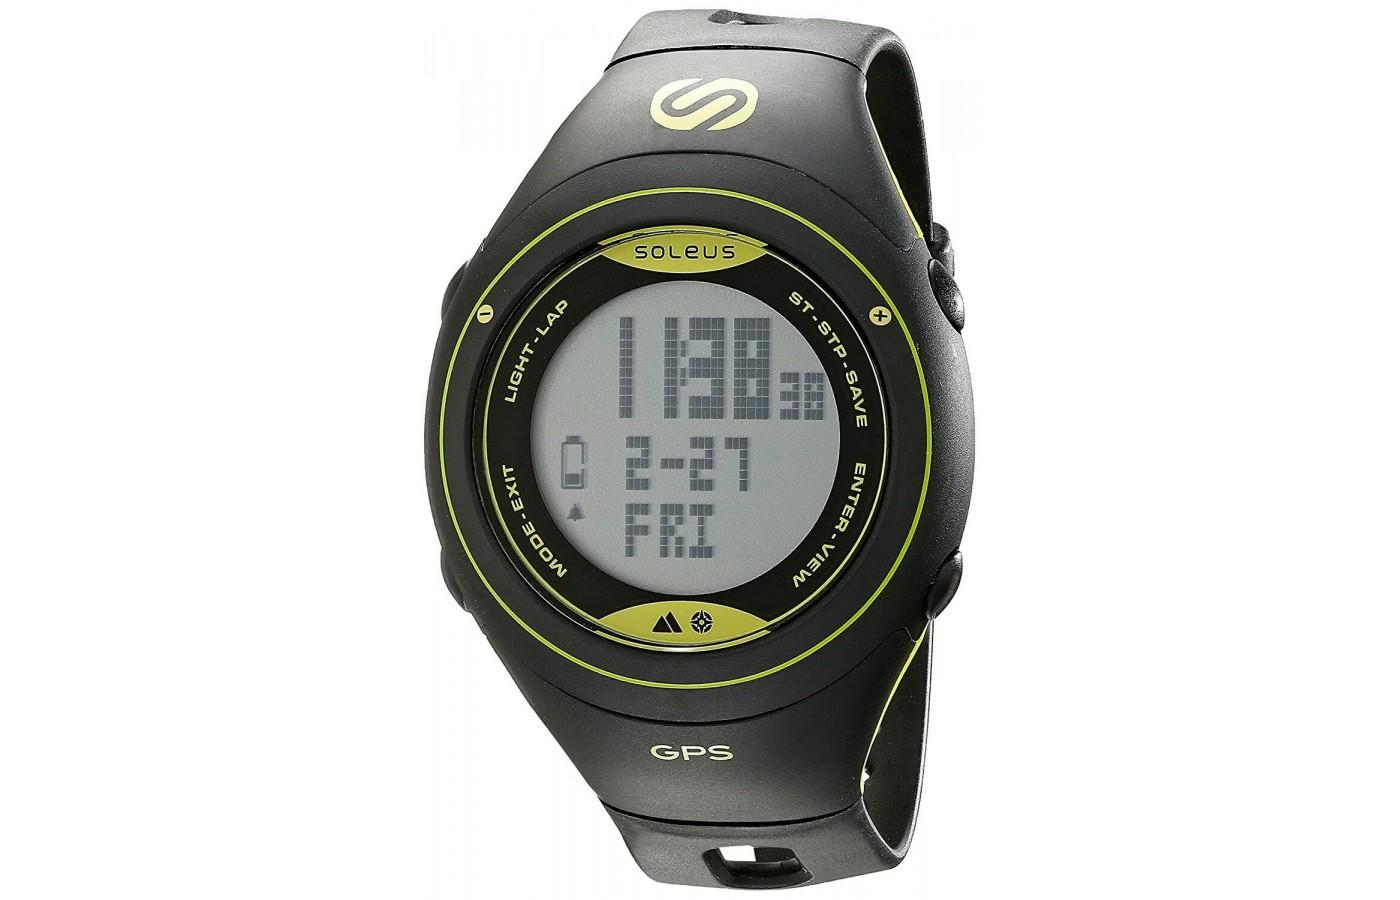 Soleus GPS Cross Country Fitness Watch in Black/Lime